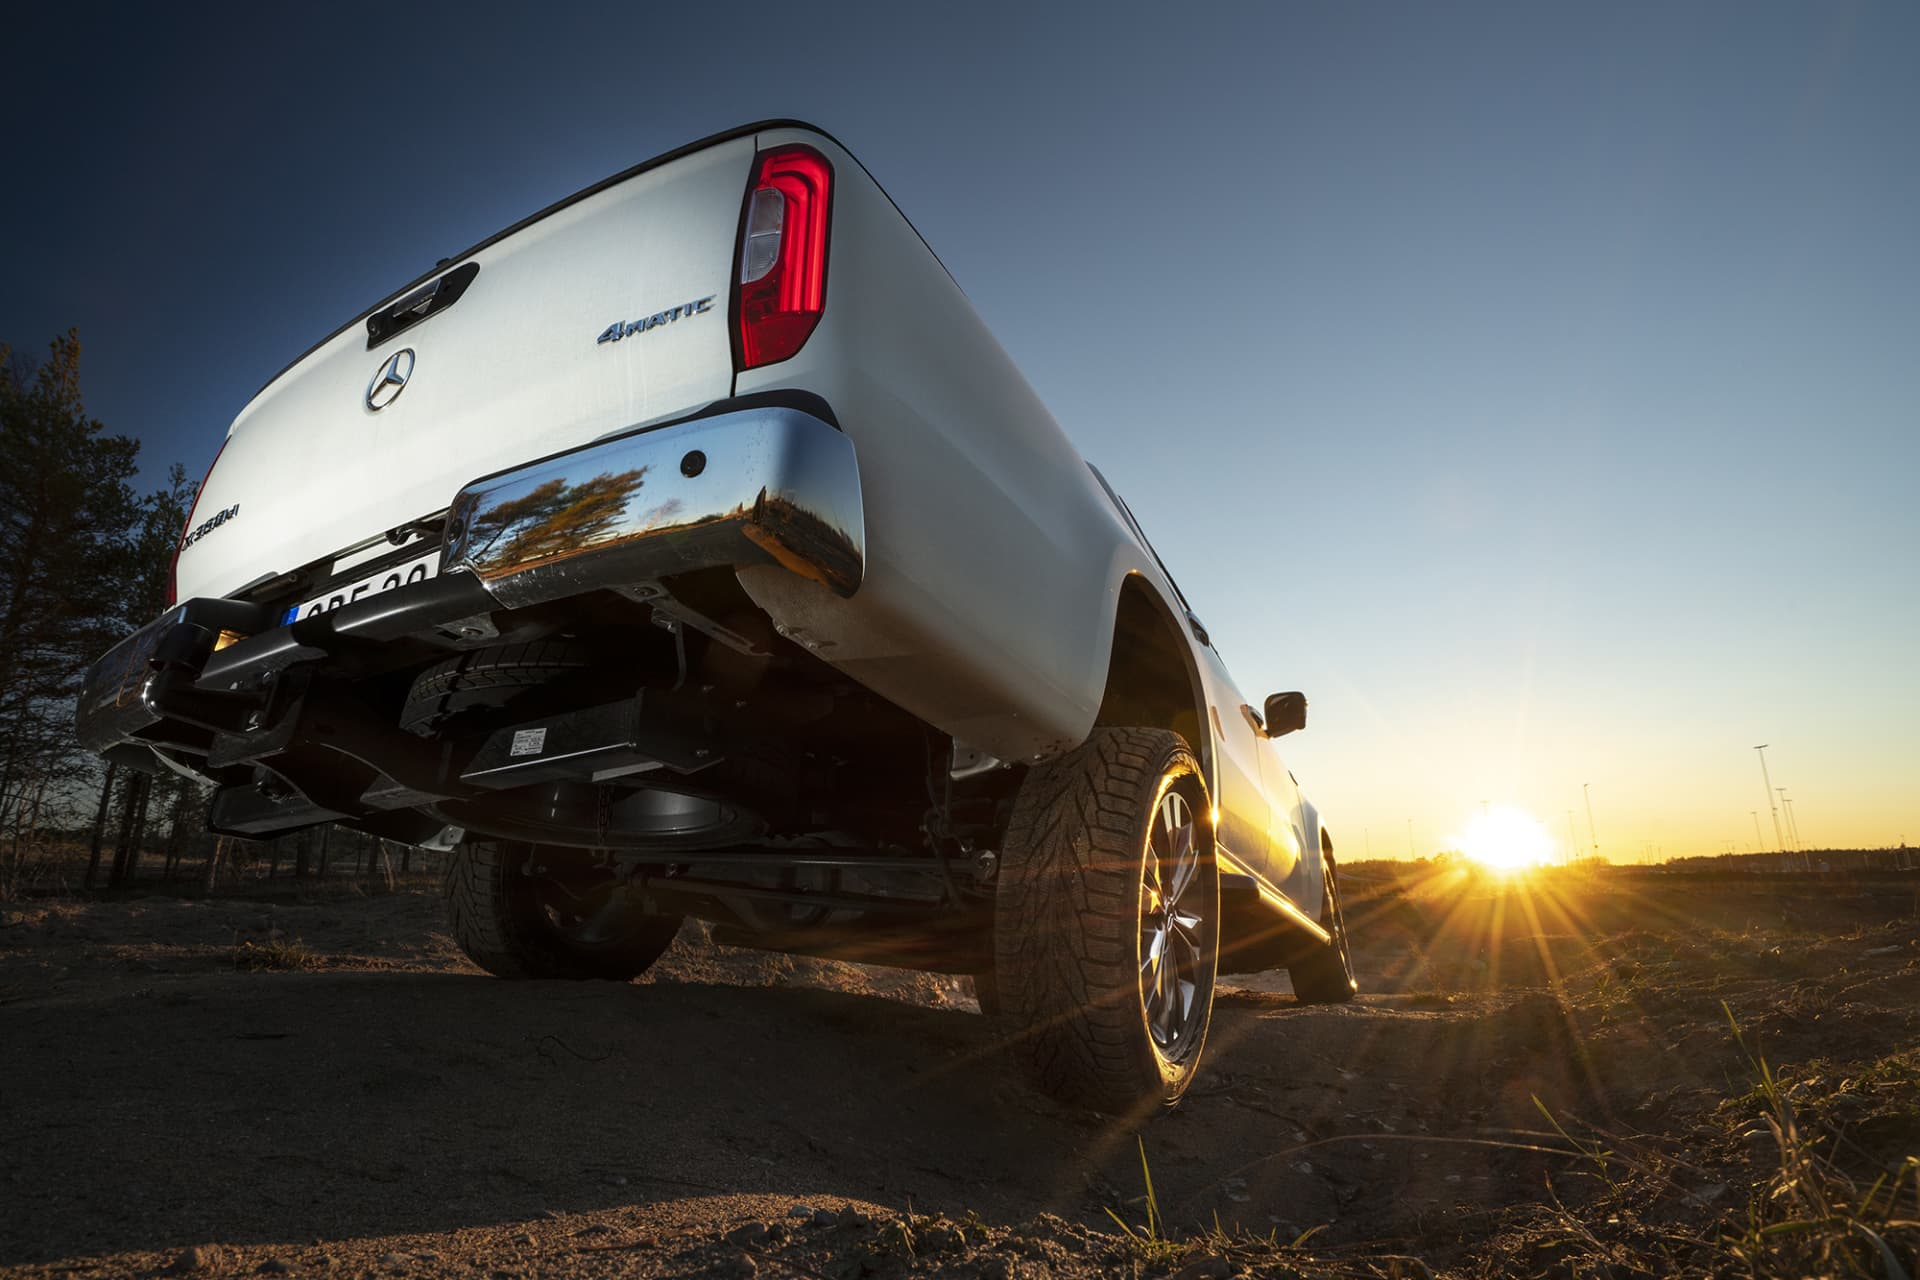 X-Class has good terrain knowledge thanks to low and high gear and can be equipped with diff lock back.